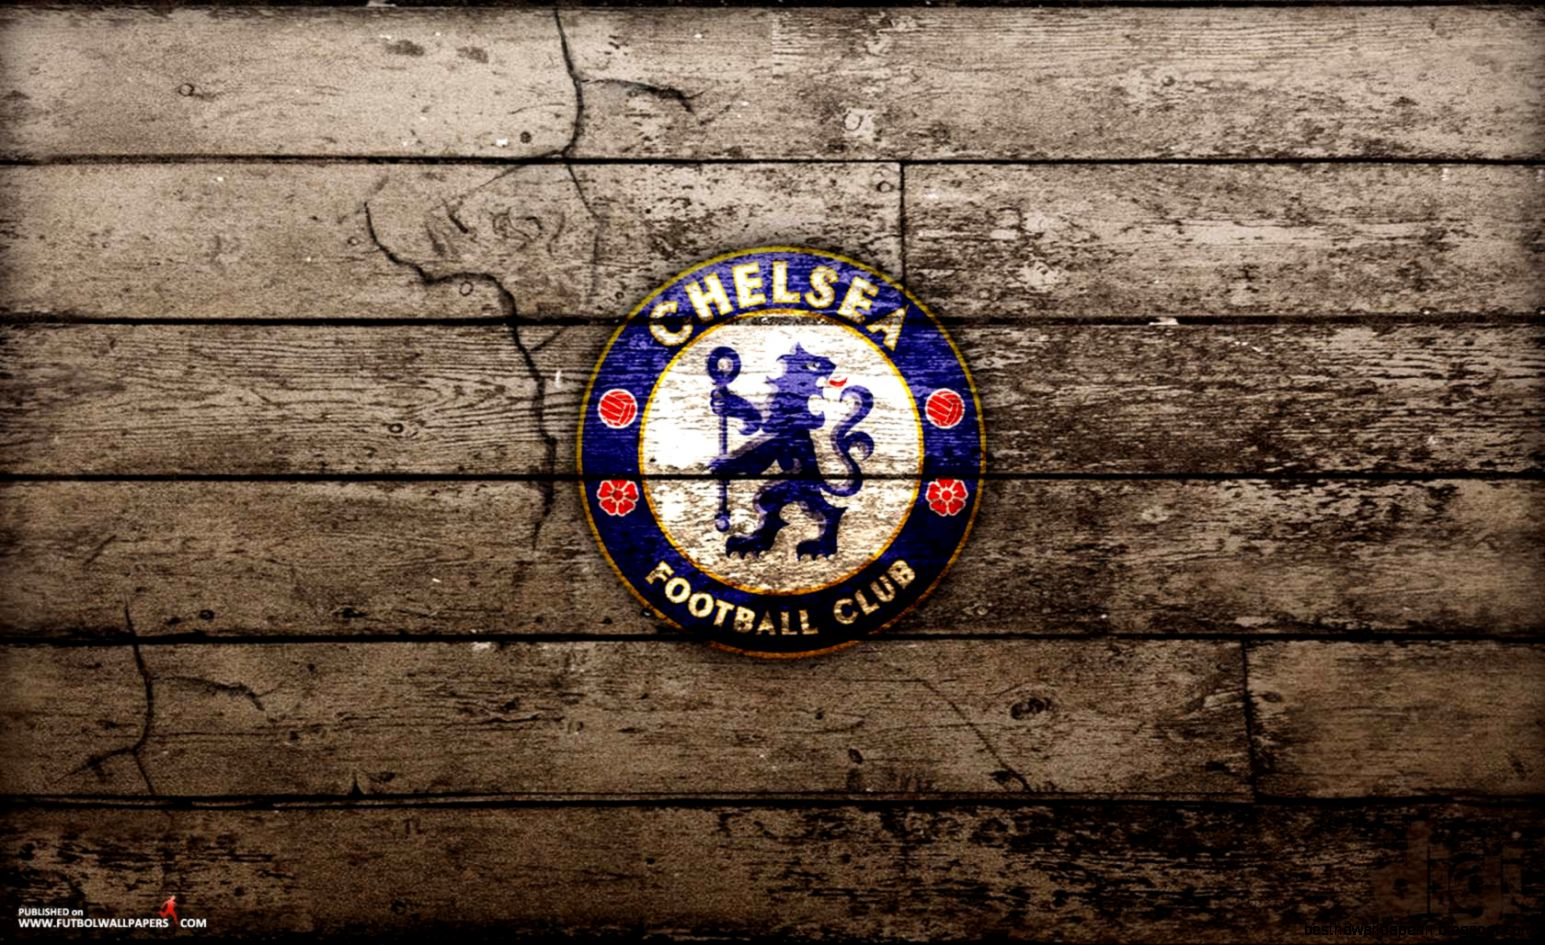 Chelsea Hd Wallpaper Best Hd Wallpapers